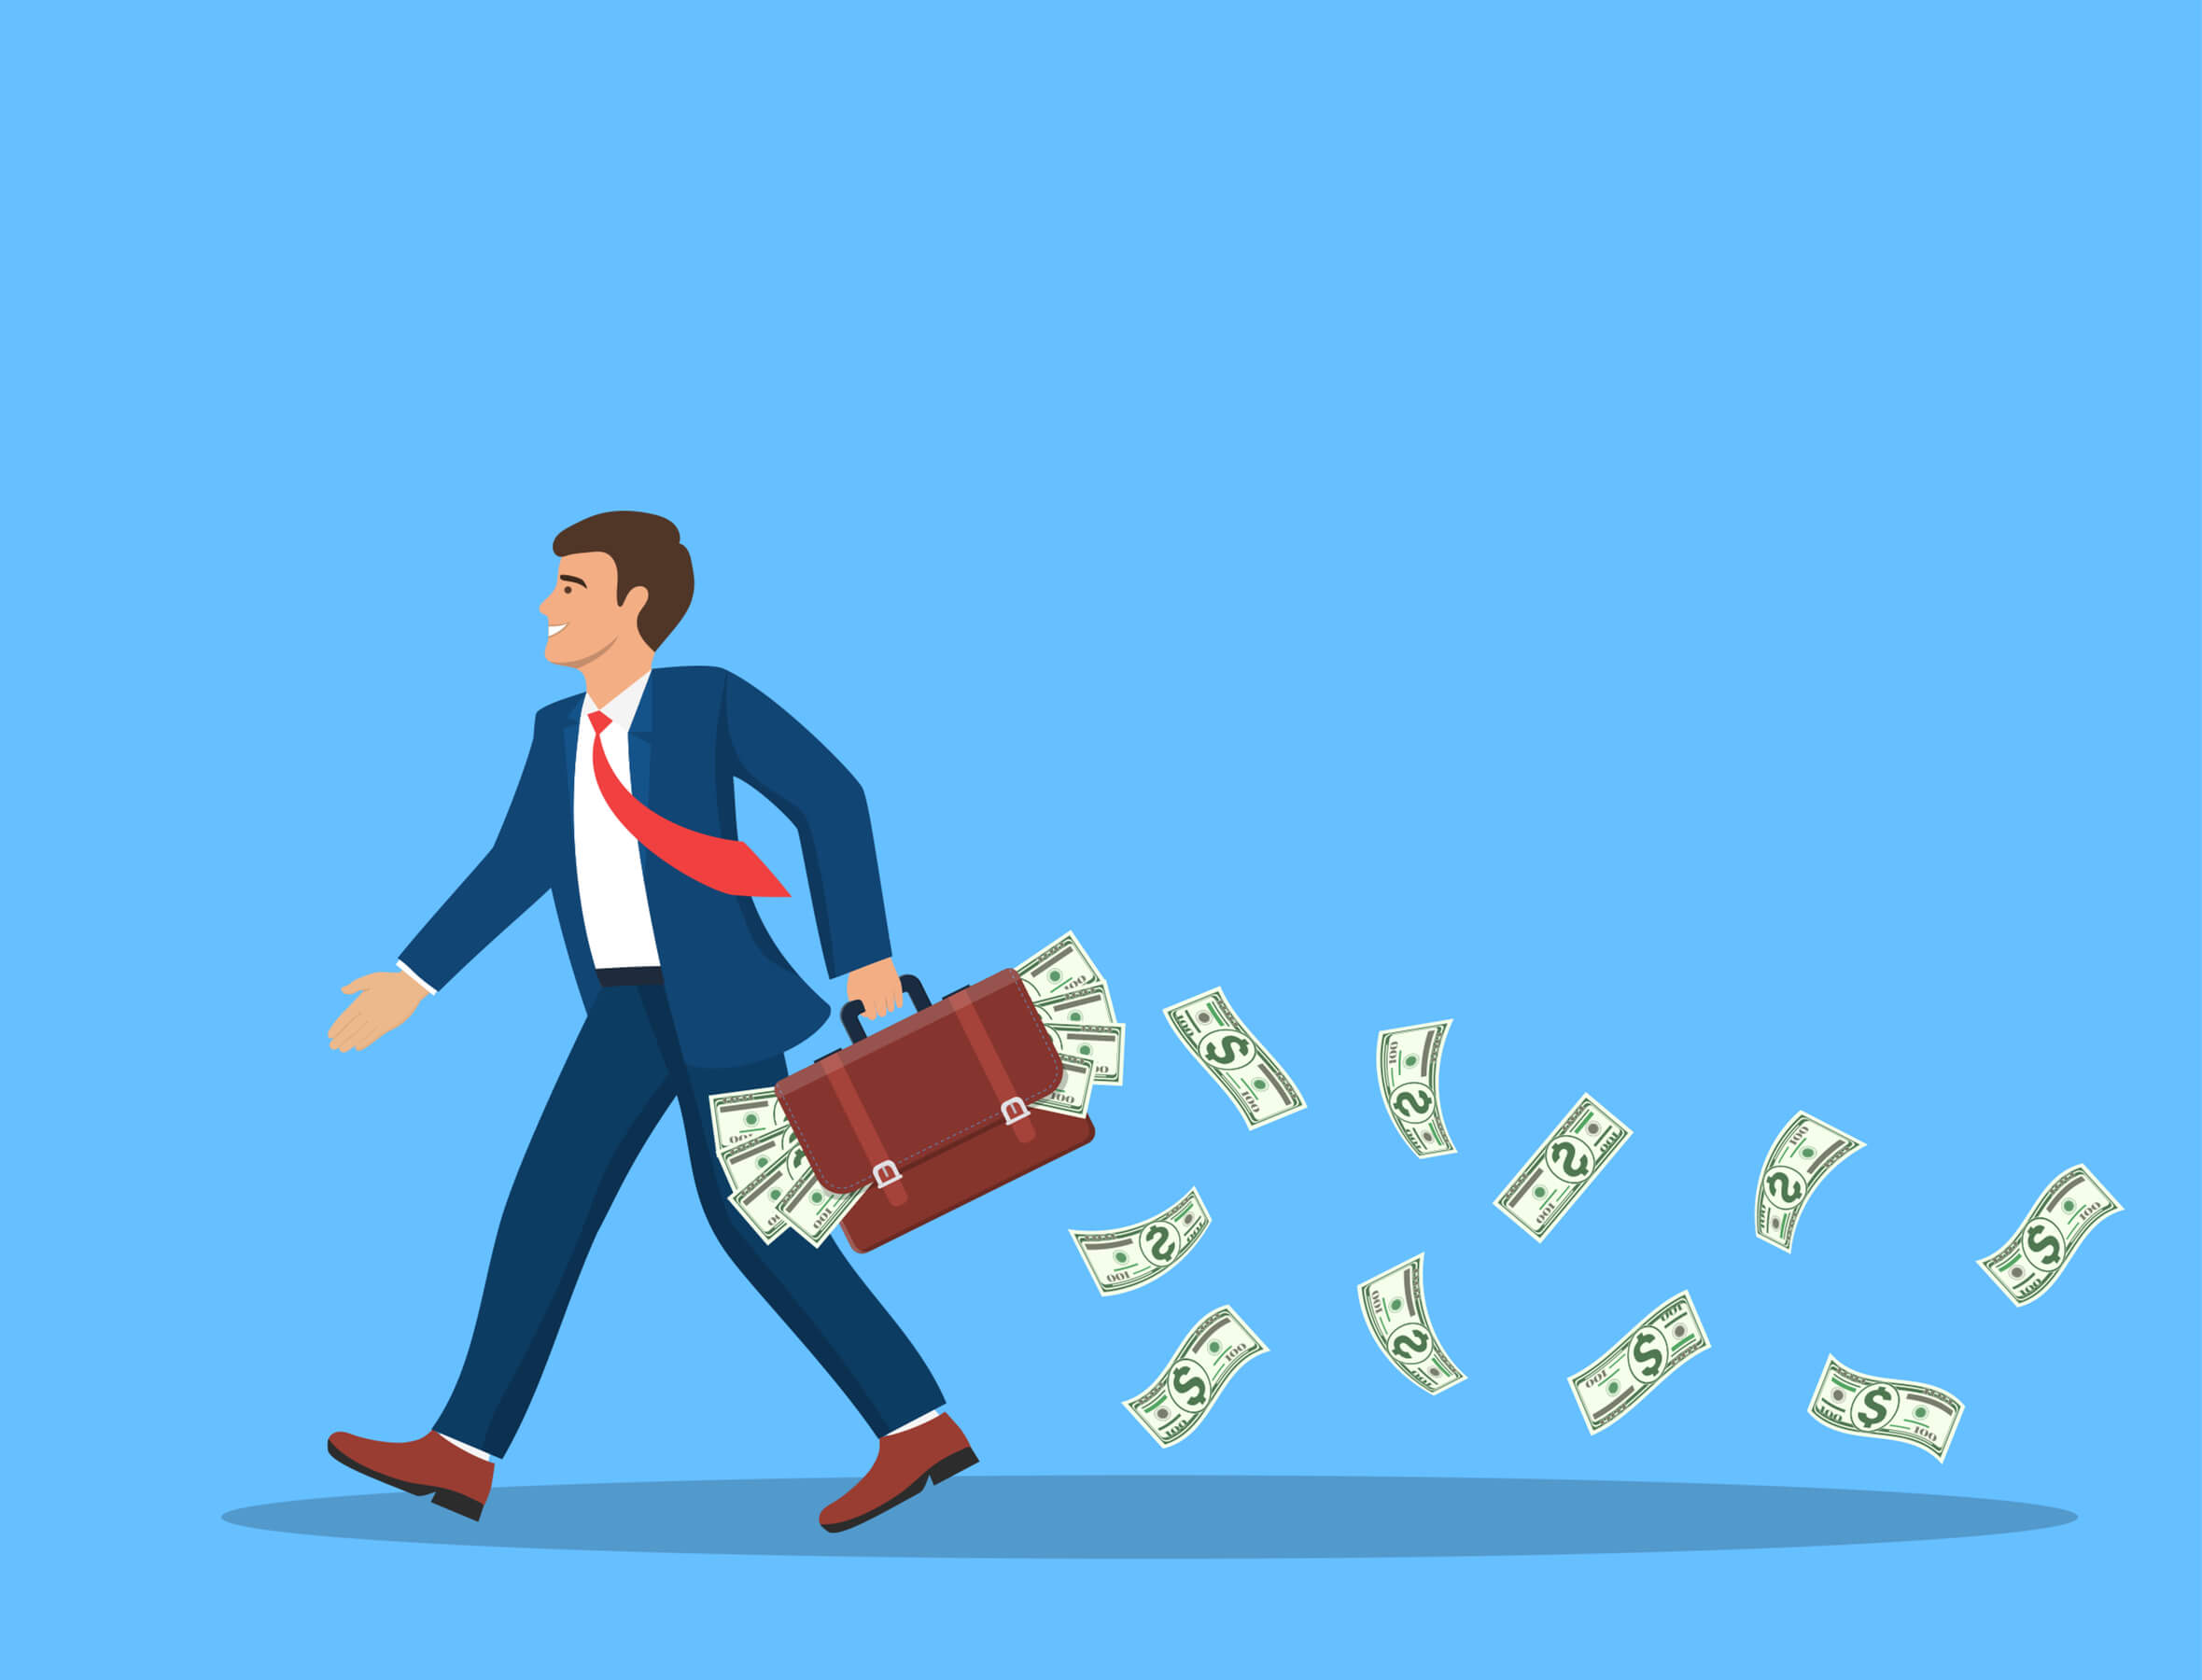 Cash falling and losing without knowing to the trader